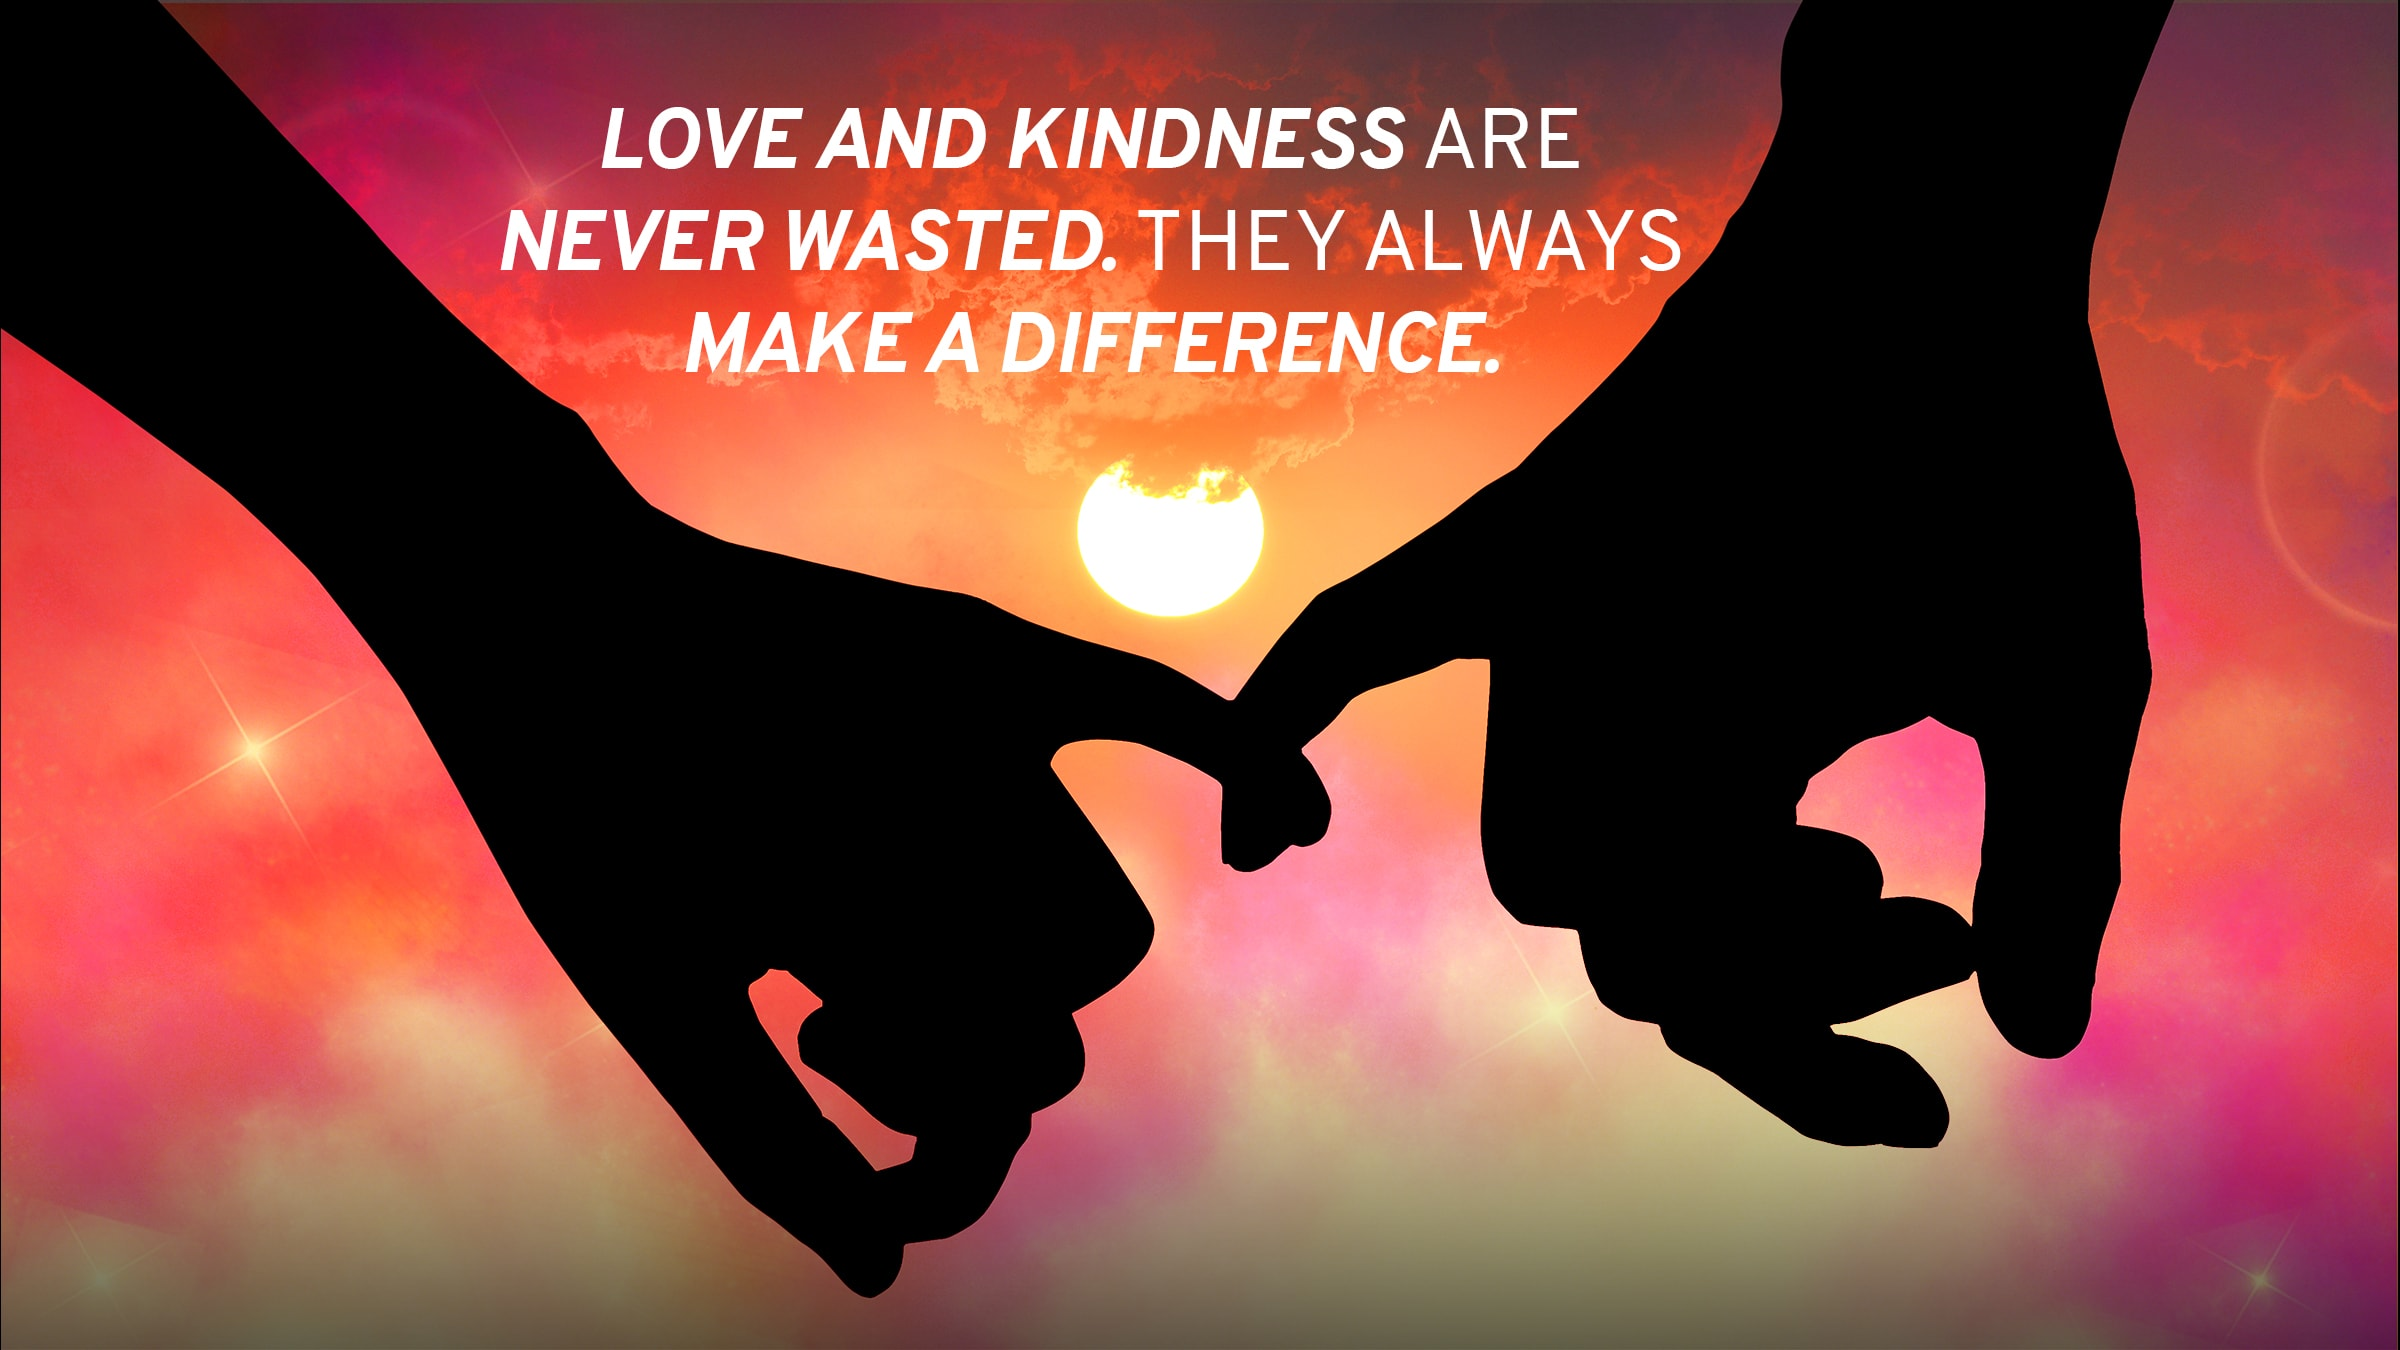 Love and kindness are never wasted. They always make a difference.